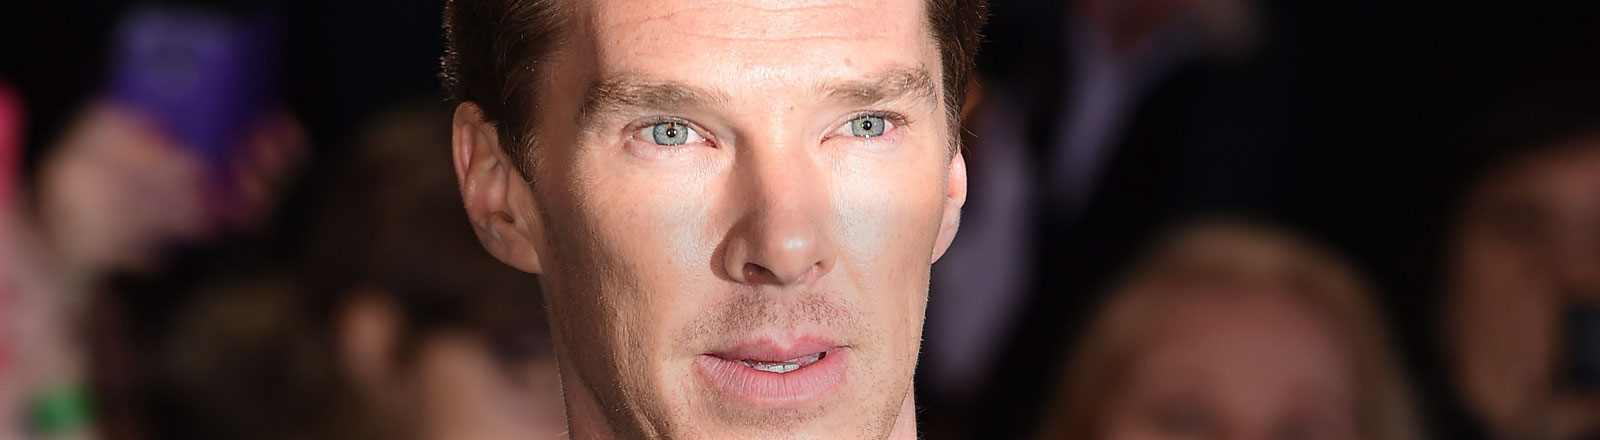 Benedict Cumberbatch bei der Premiere von The Hobbit in London.